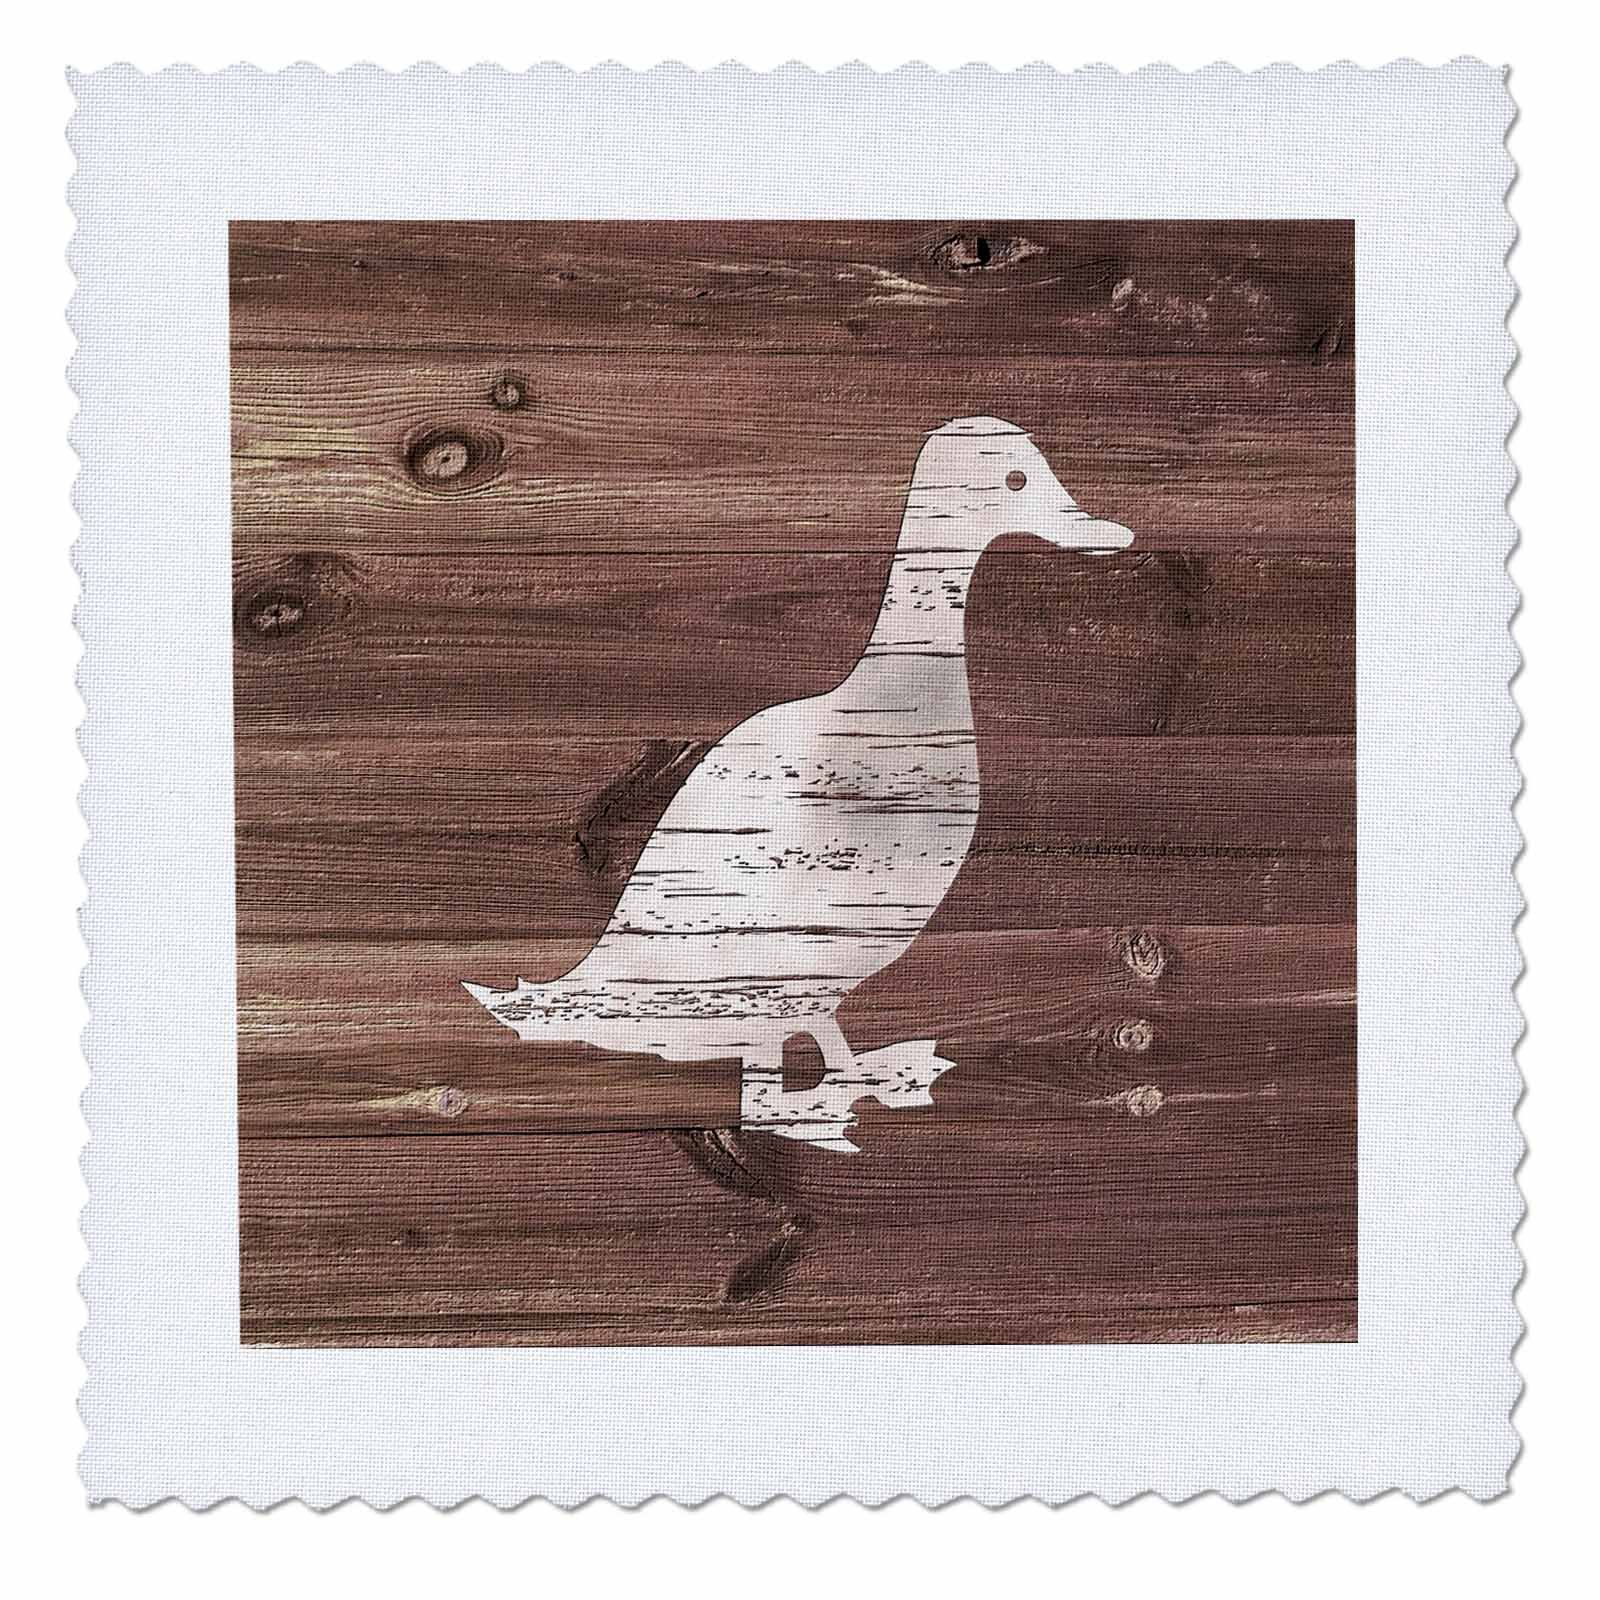 3dRose Russ Billington Designs - Little White Duck on Brown Weatherboard- Not Real Wood - 22x22 inch quilt square (qs_261844_9)